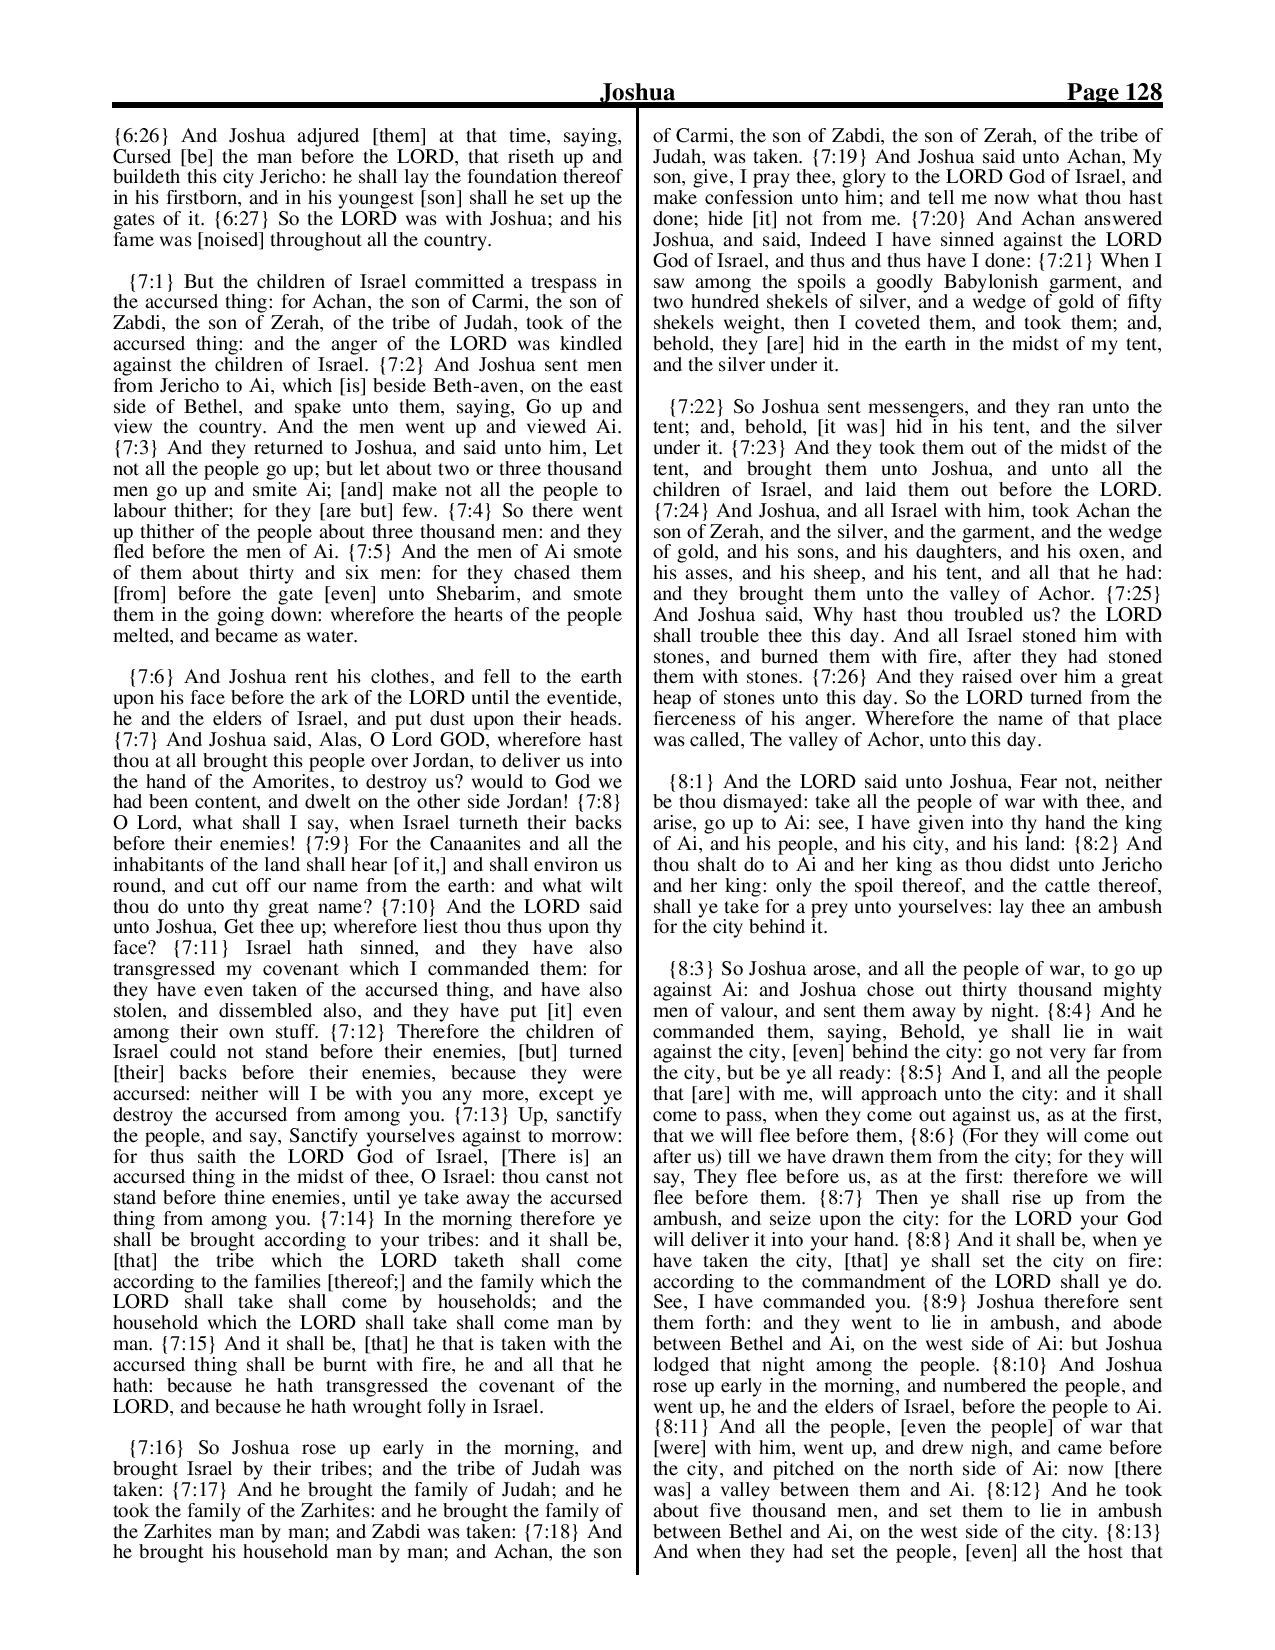 King-James-Bible-KJV-Bible-PDF-page-149